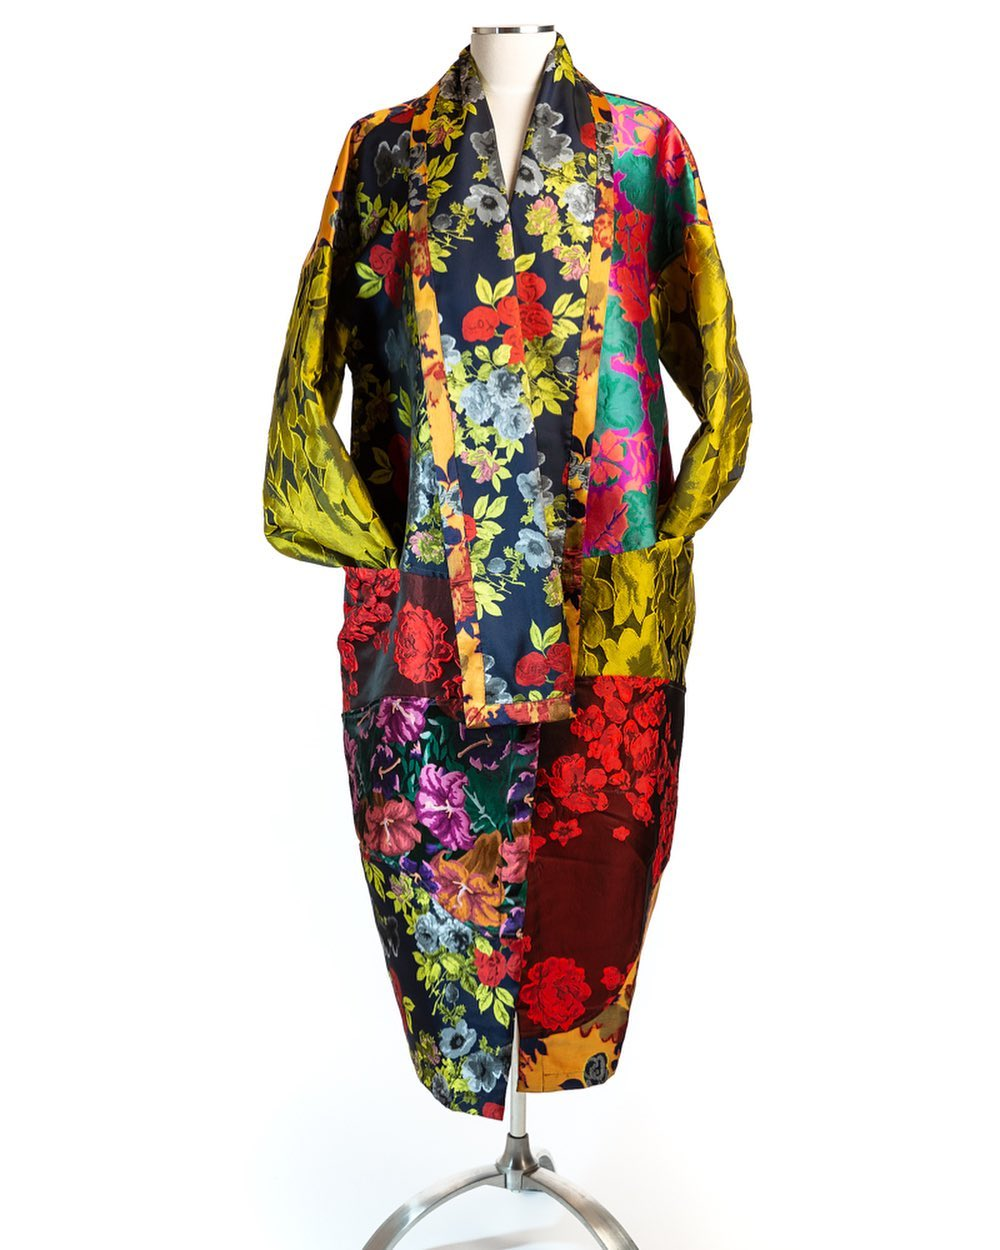 The coat of many colors! This will brighten up your wardrobe! We're open from 12-5 today! Happy Sunday @grovearcade @caravans_asheville @alembika